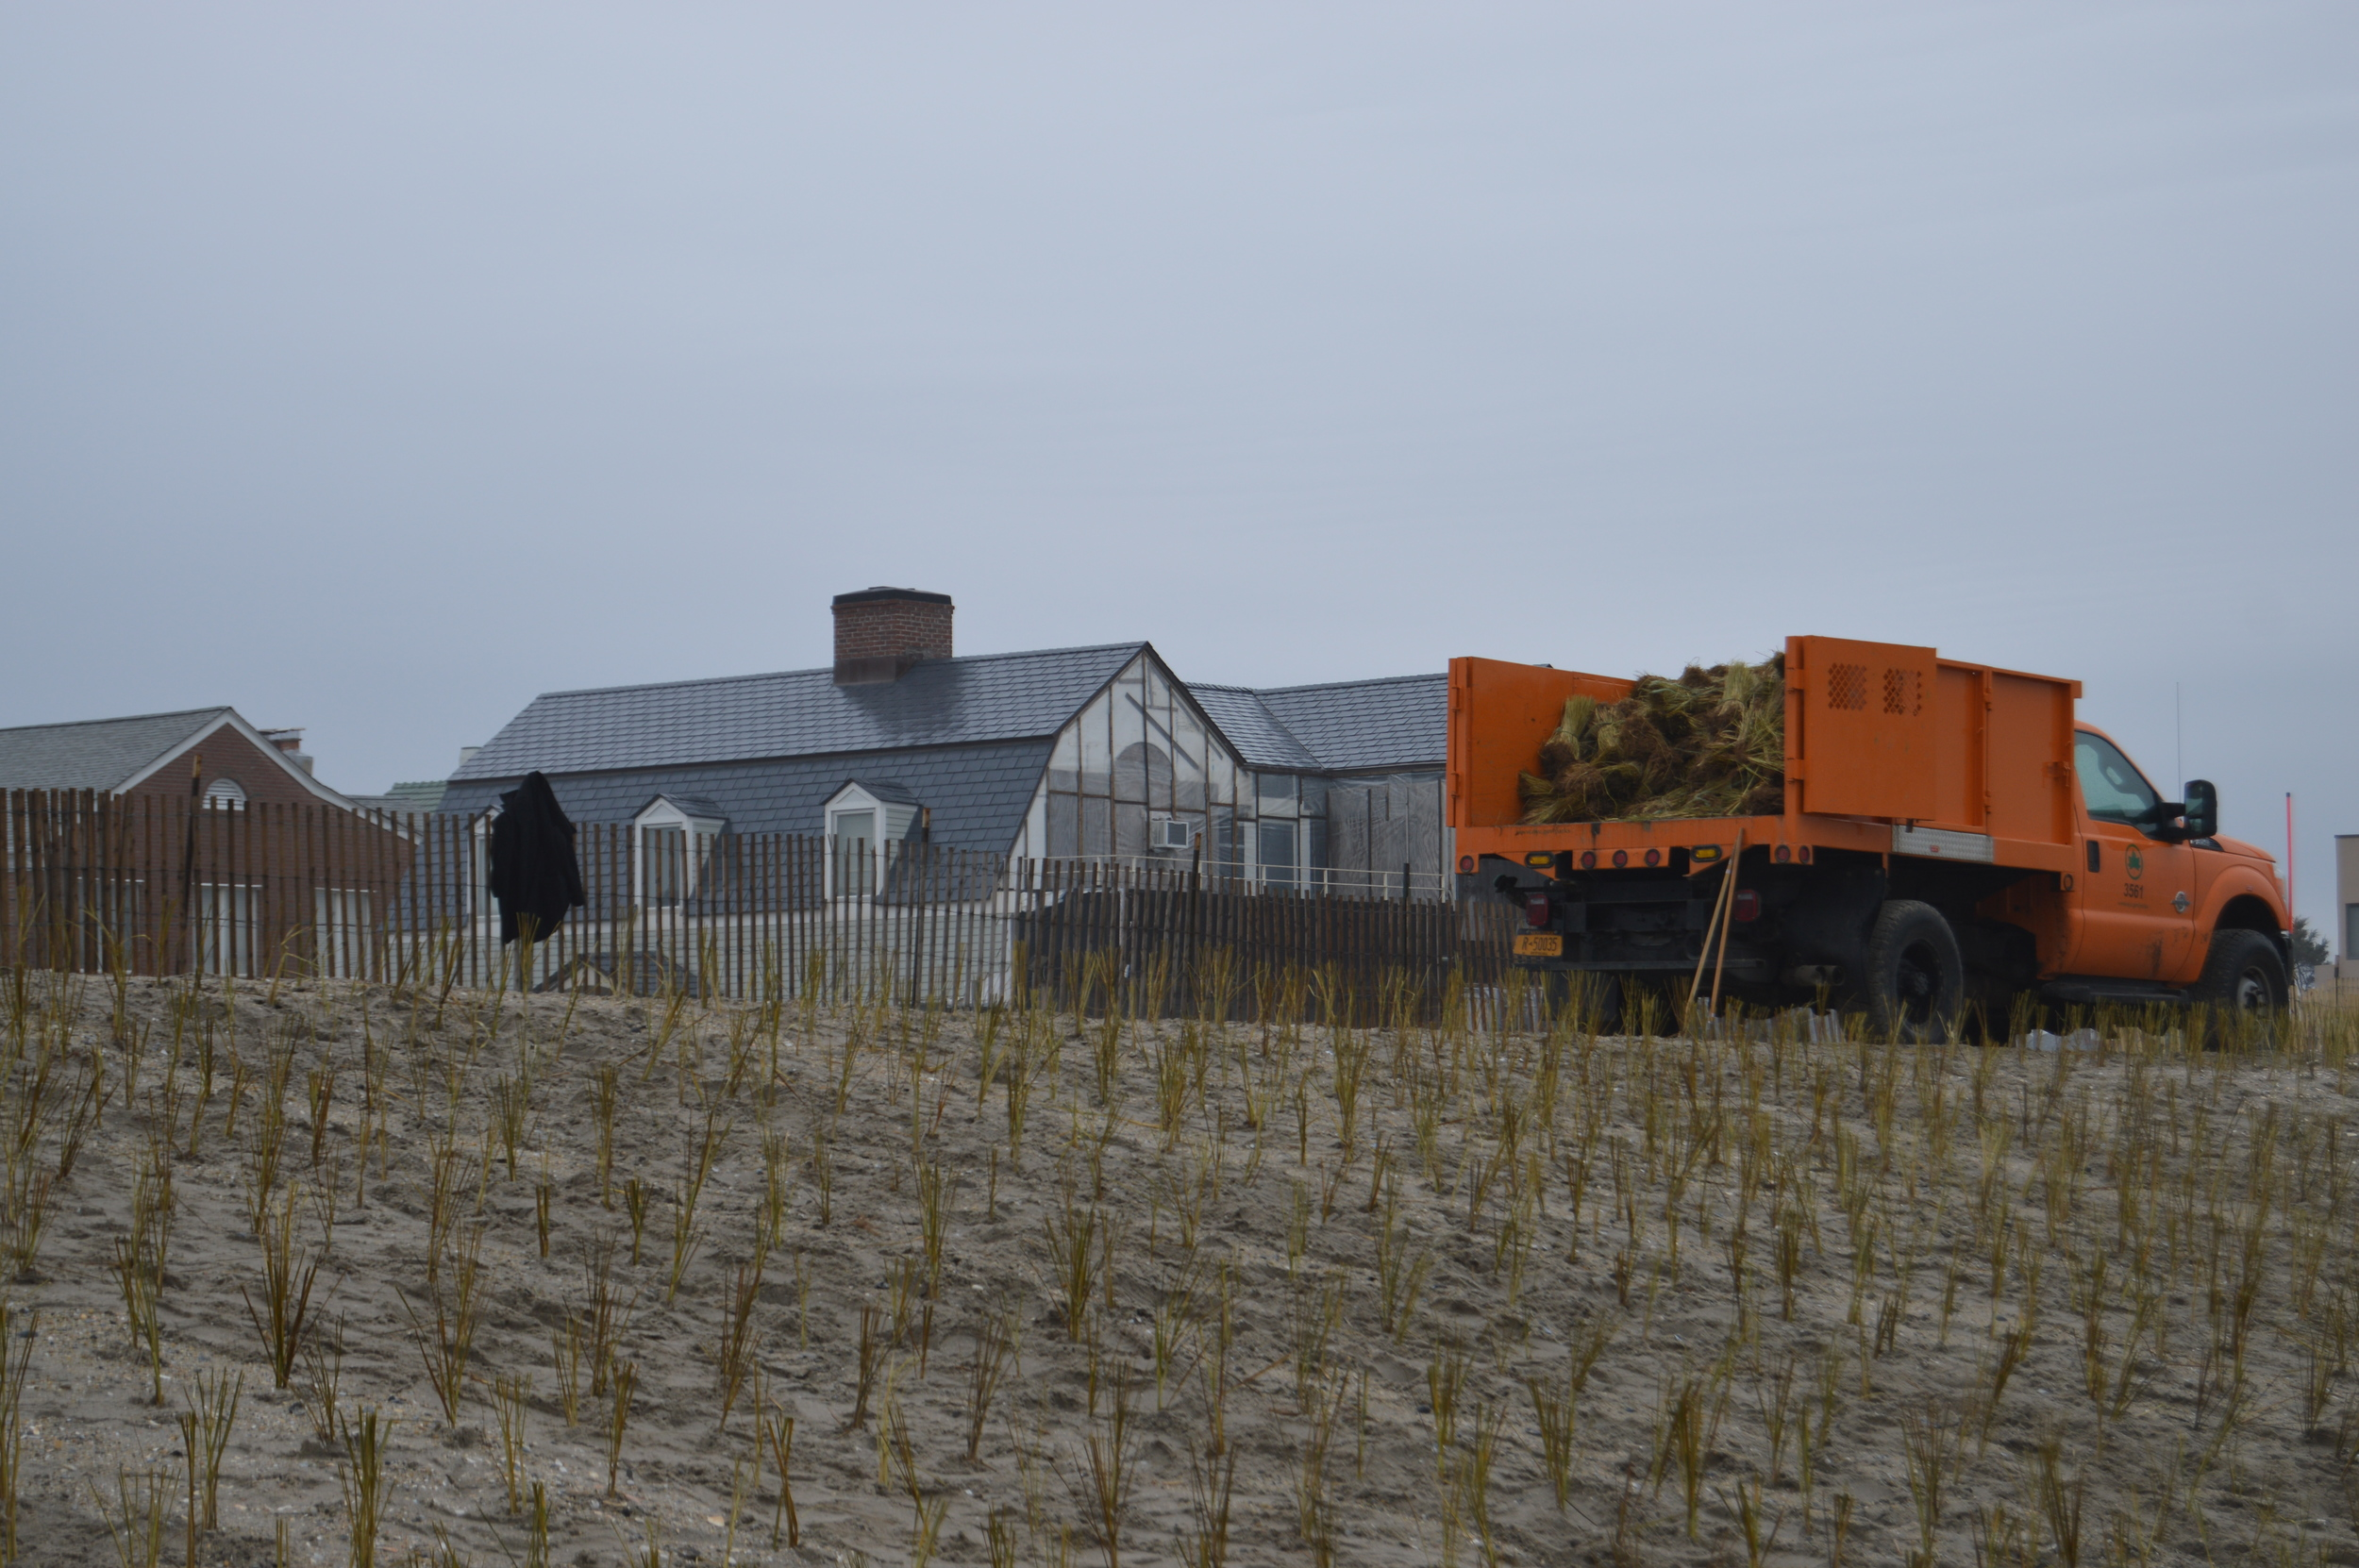 Beach grass plays an important role in dune fortification and coastal protection.